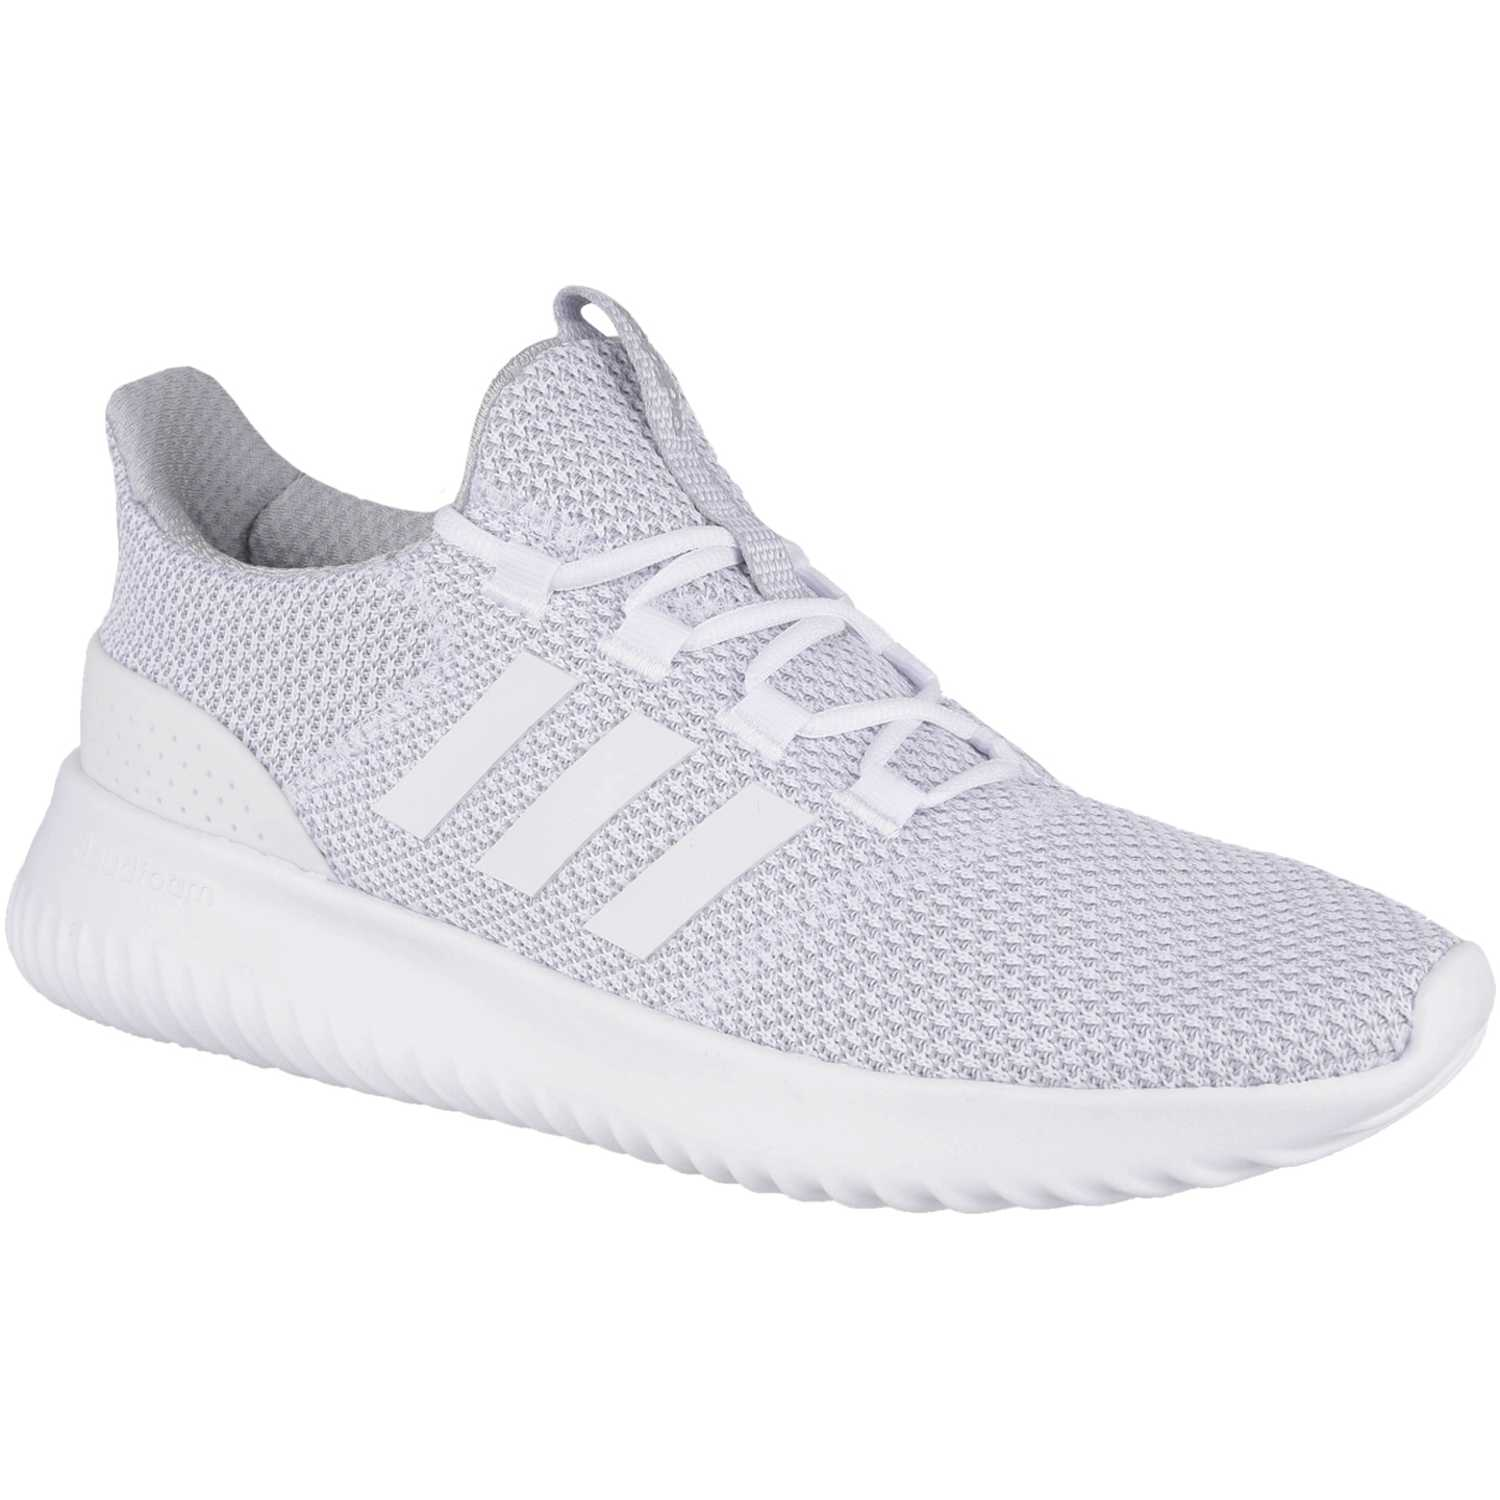 adidas NEO cloudfoam ultimate Gris / blanco Walking ...